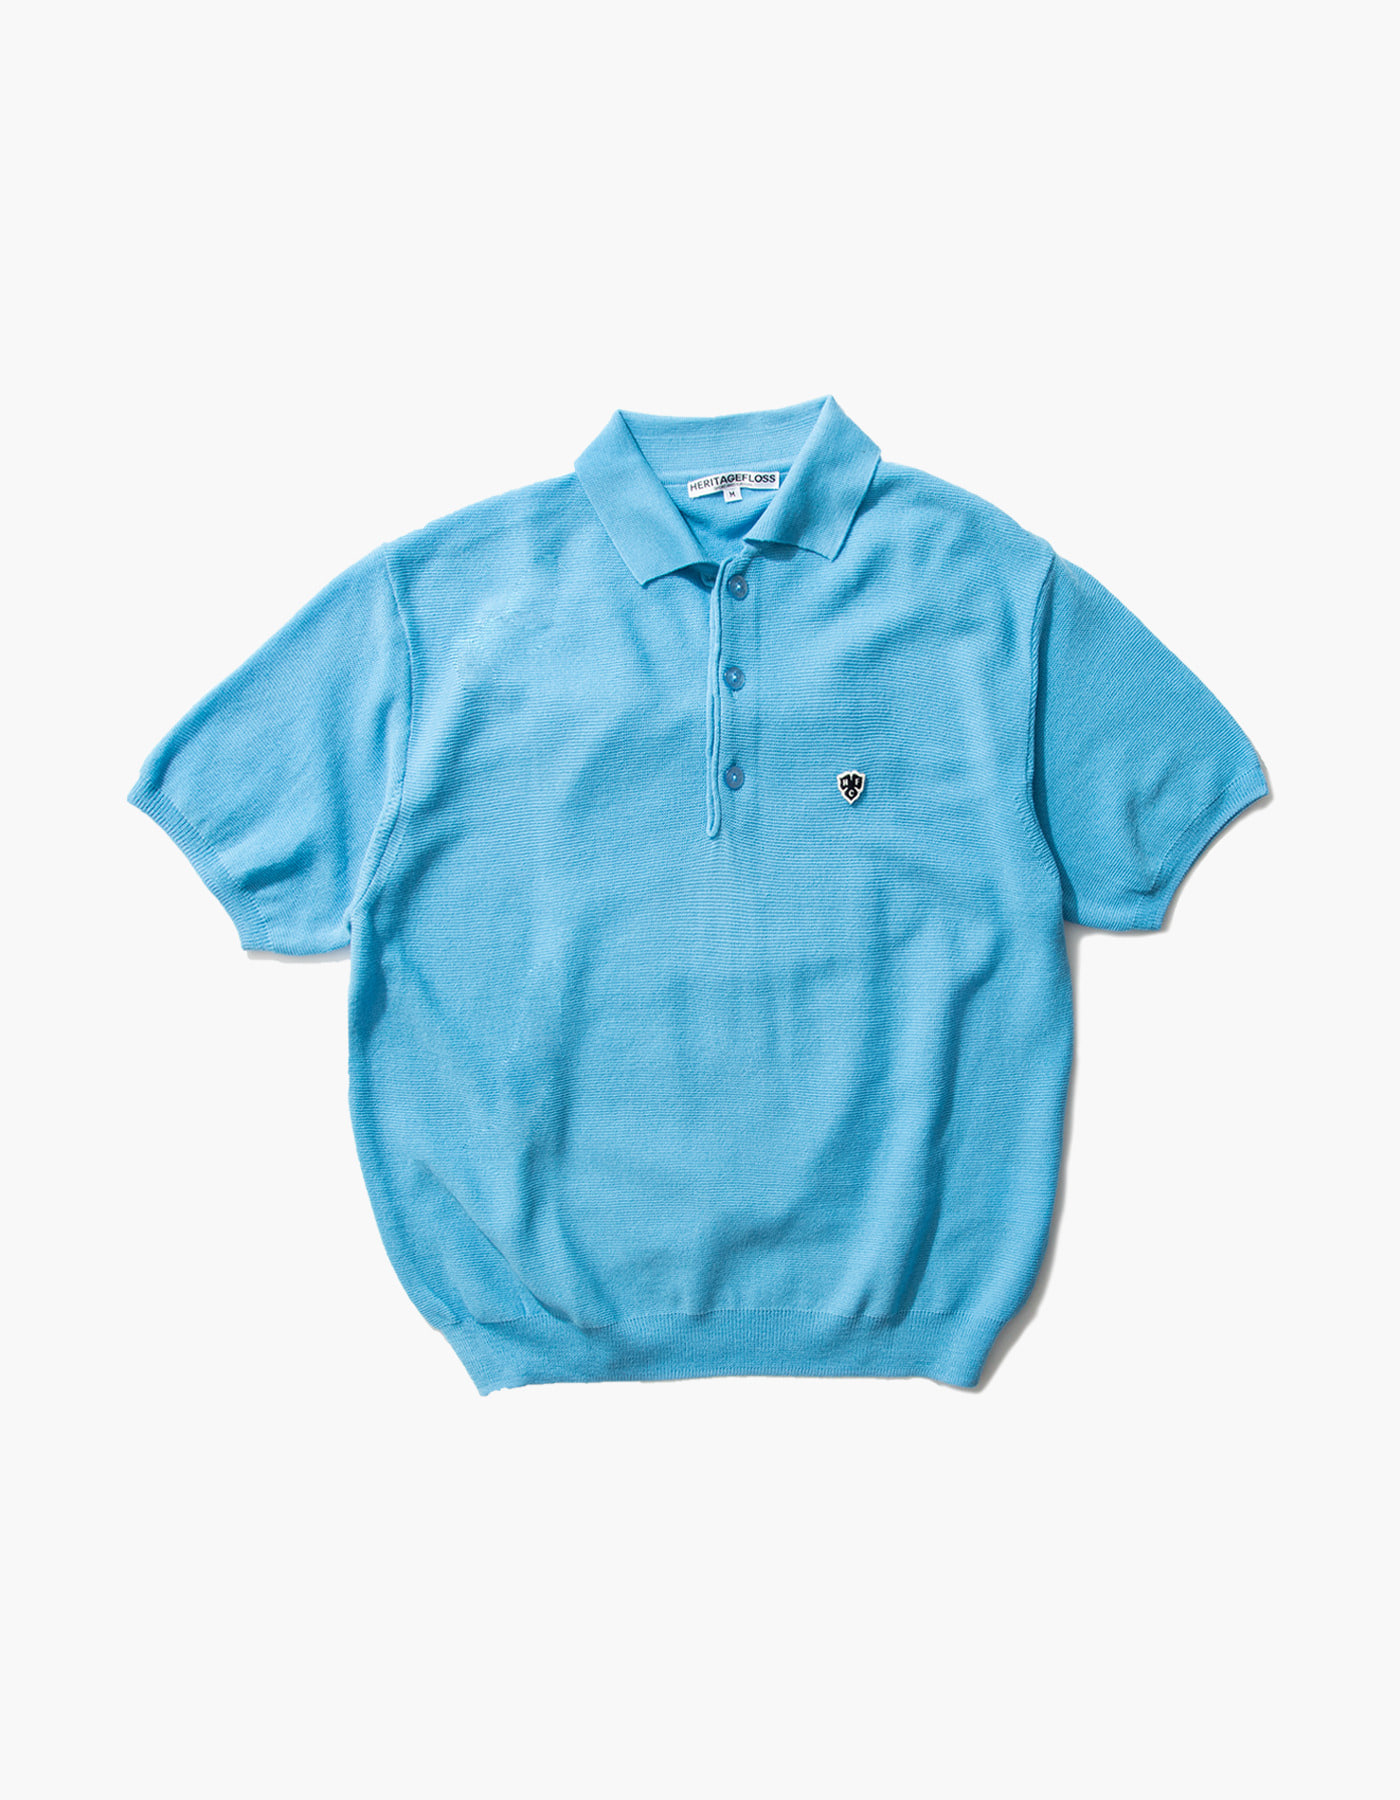 HFC CLOVER POLO SHIRTS / SKY BLUE